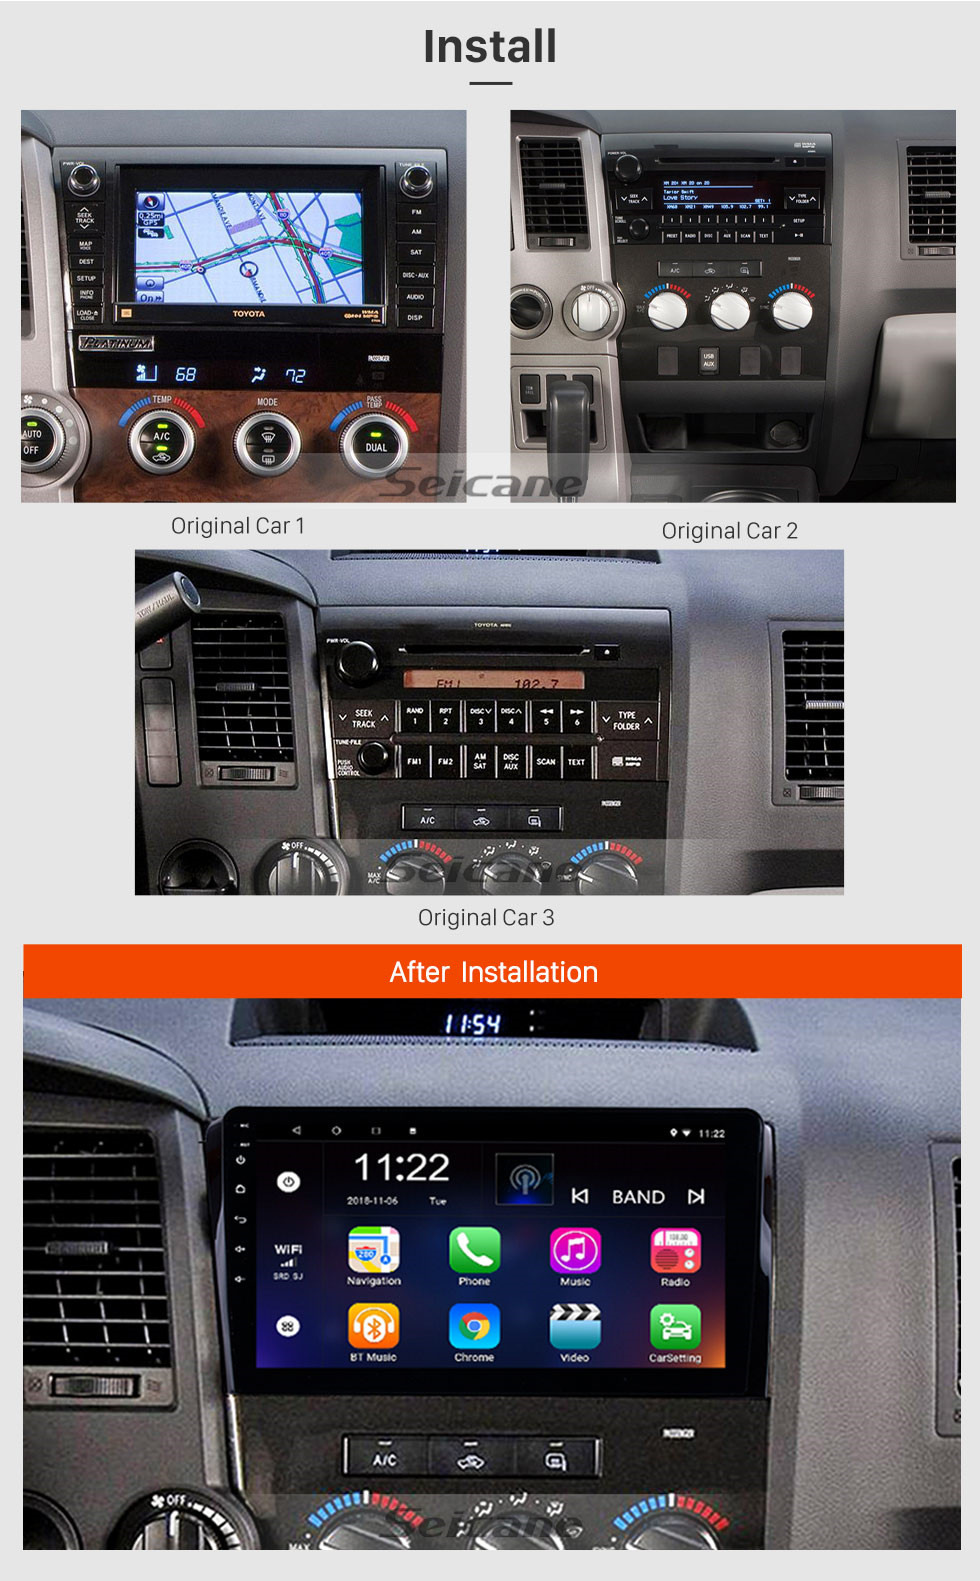 Seicane 10.1 inch HD touchscreen Radio GPS Navigation System Android 10.0 for 2008-2015 TOYOTA Sequoia 2006-2013 Tundra Support Radio Carplay Bluetooth OBD II DVR 3G WIFI Rear view camera